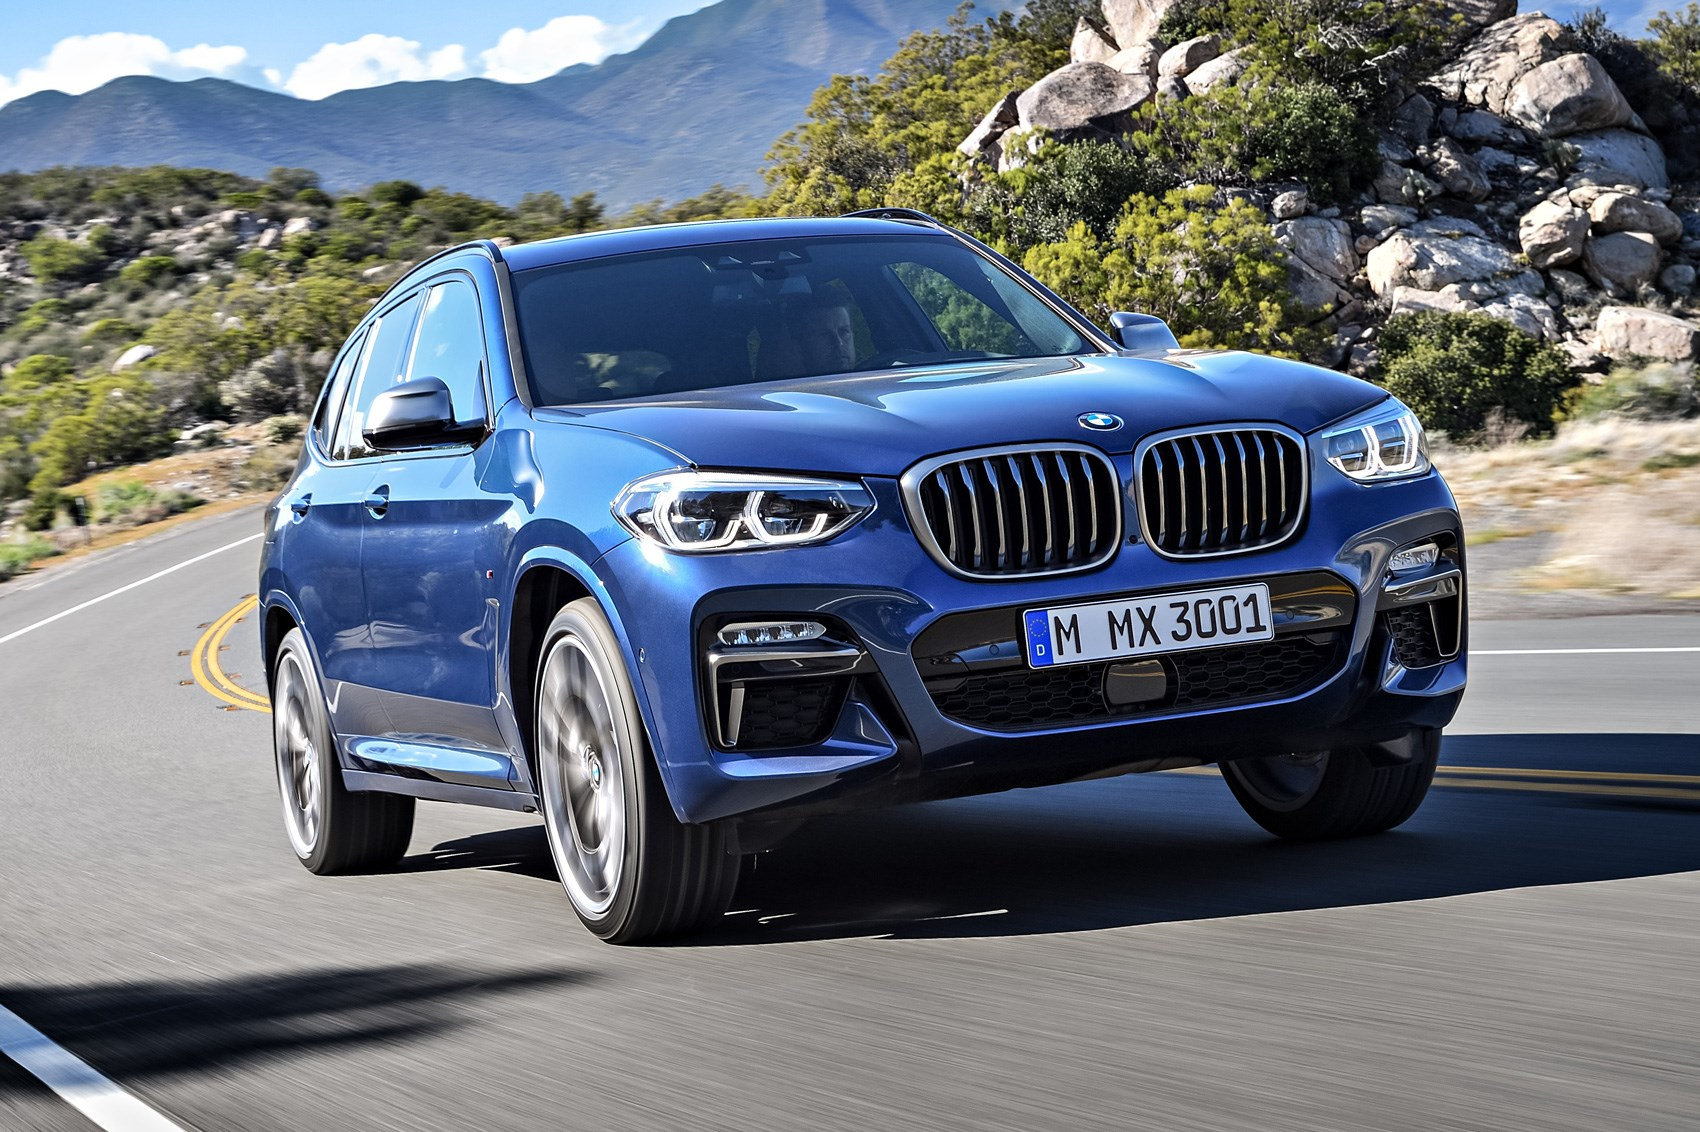 BMW X4 xDrive 35i 2014 review